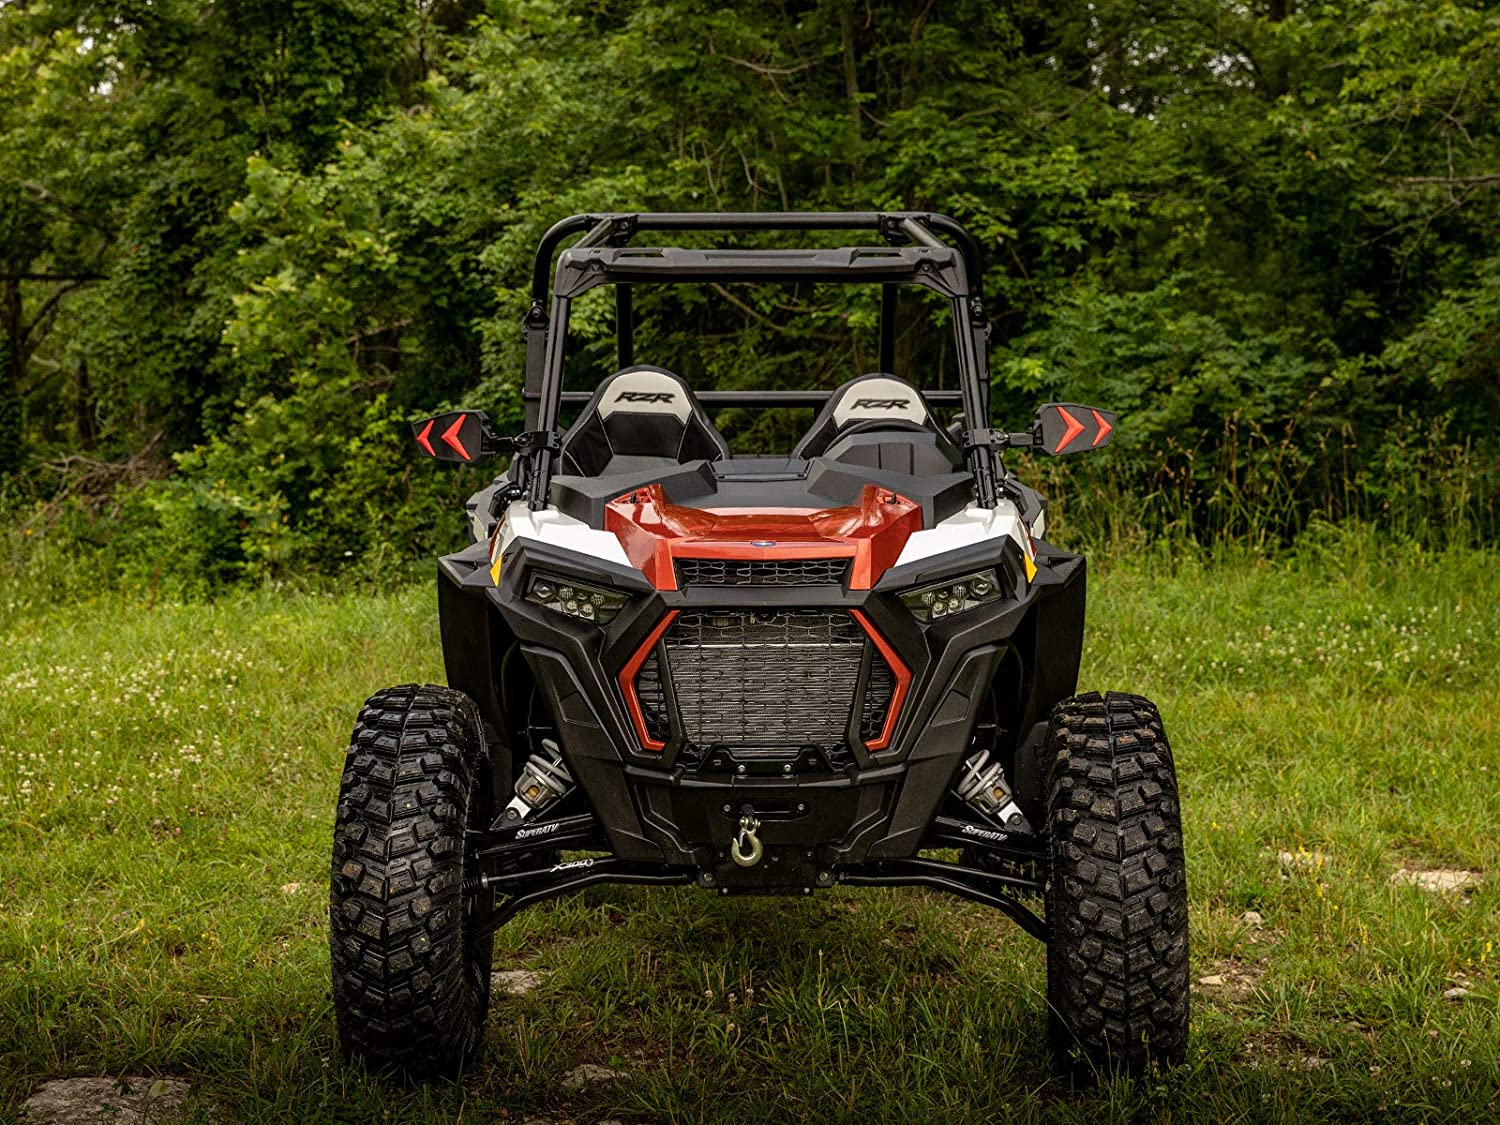 Run Huge Tires without a Huge Lift! SuperATV High Clearance 2 Forward Offset Front A-Arms for Polaris RZR XP 1000 2014+ - Black